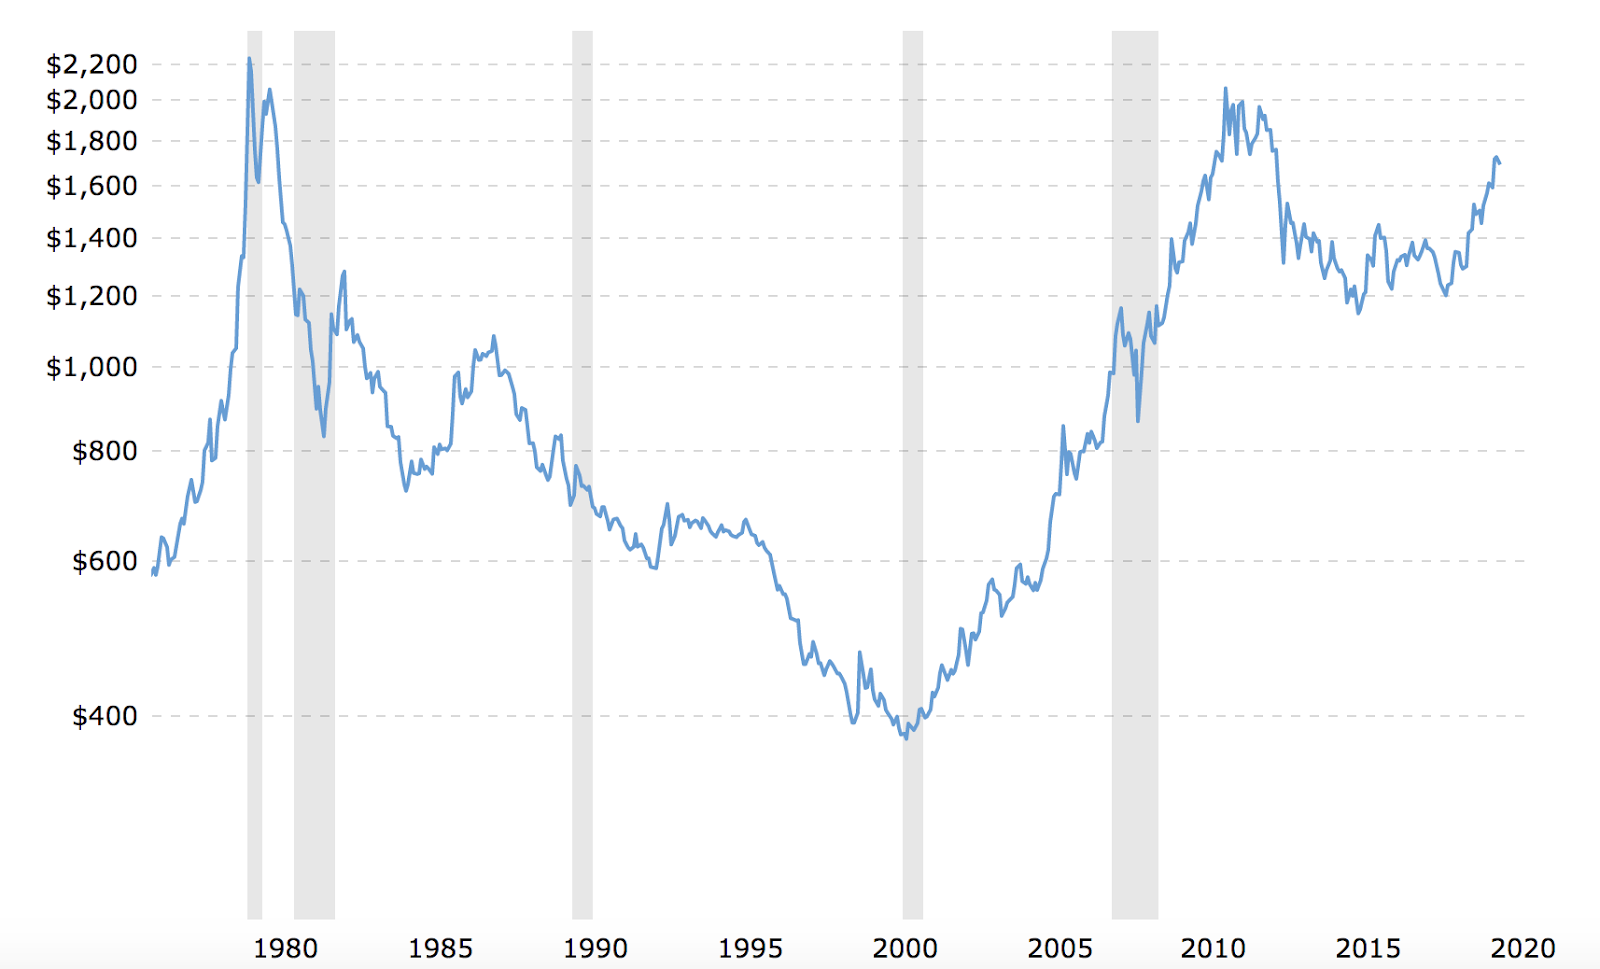 Inflated-adjusted price of gold